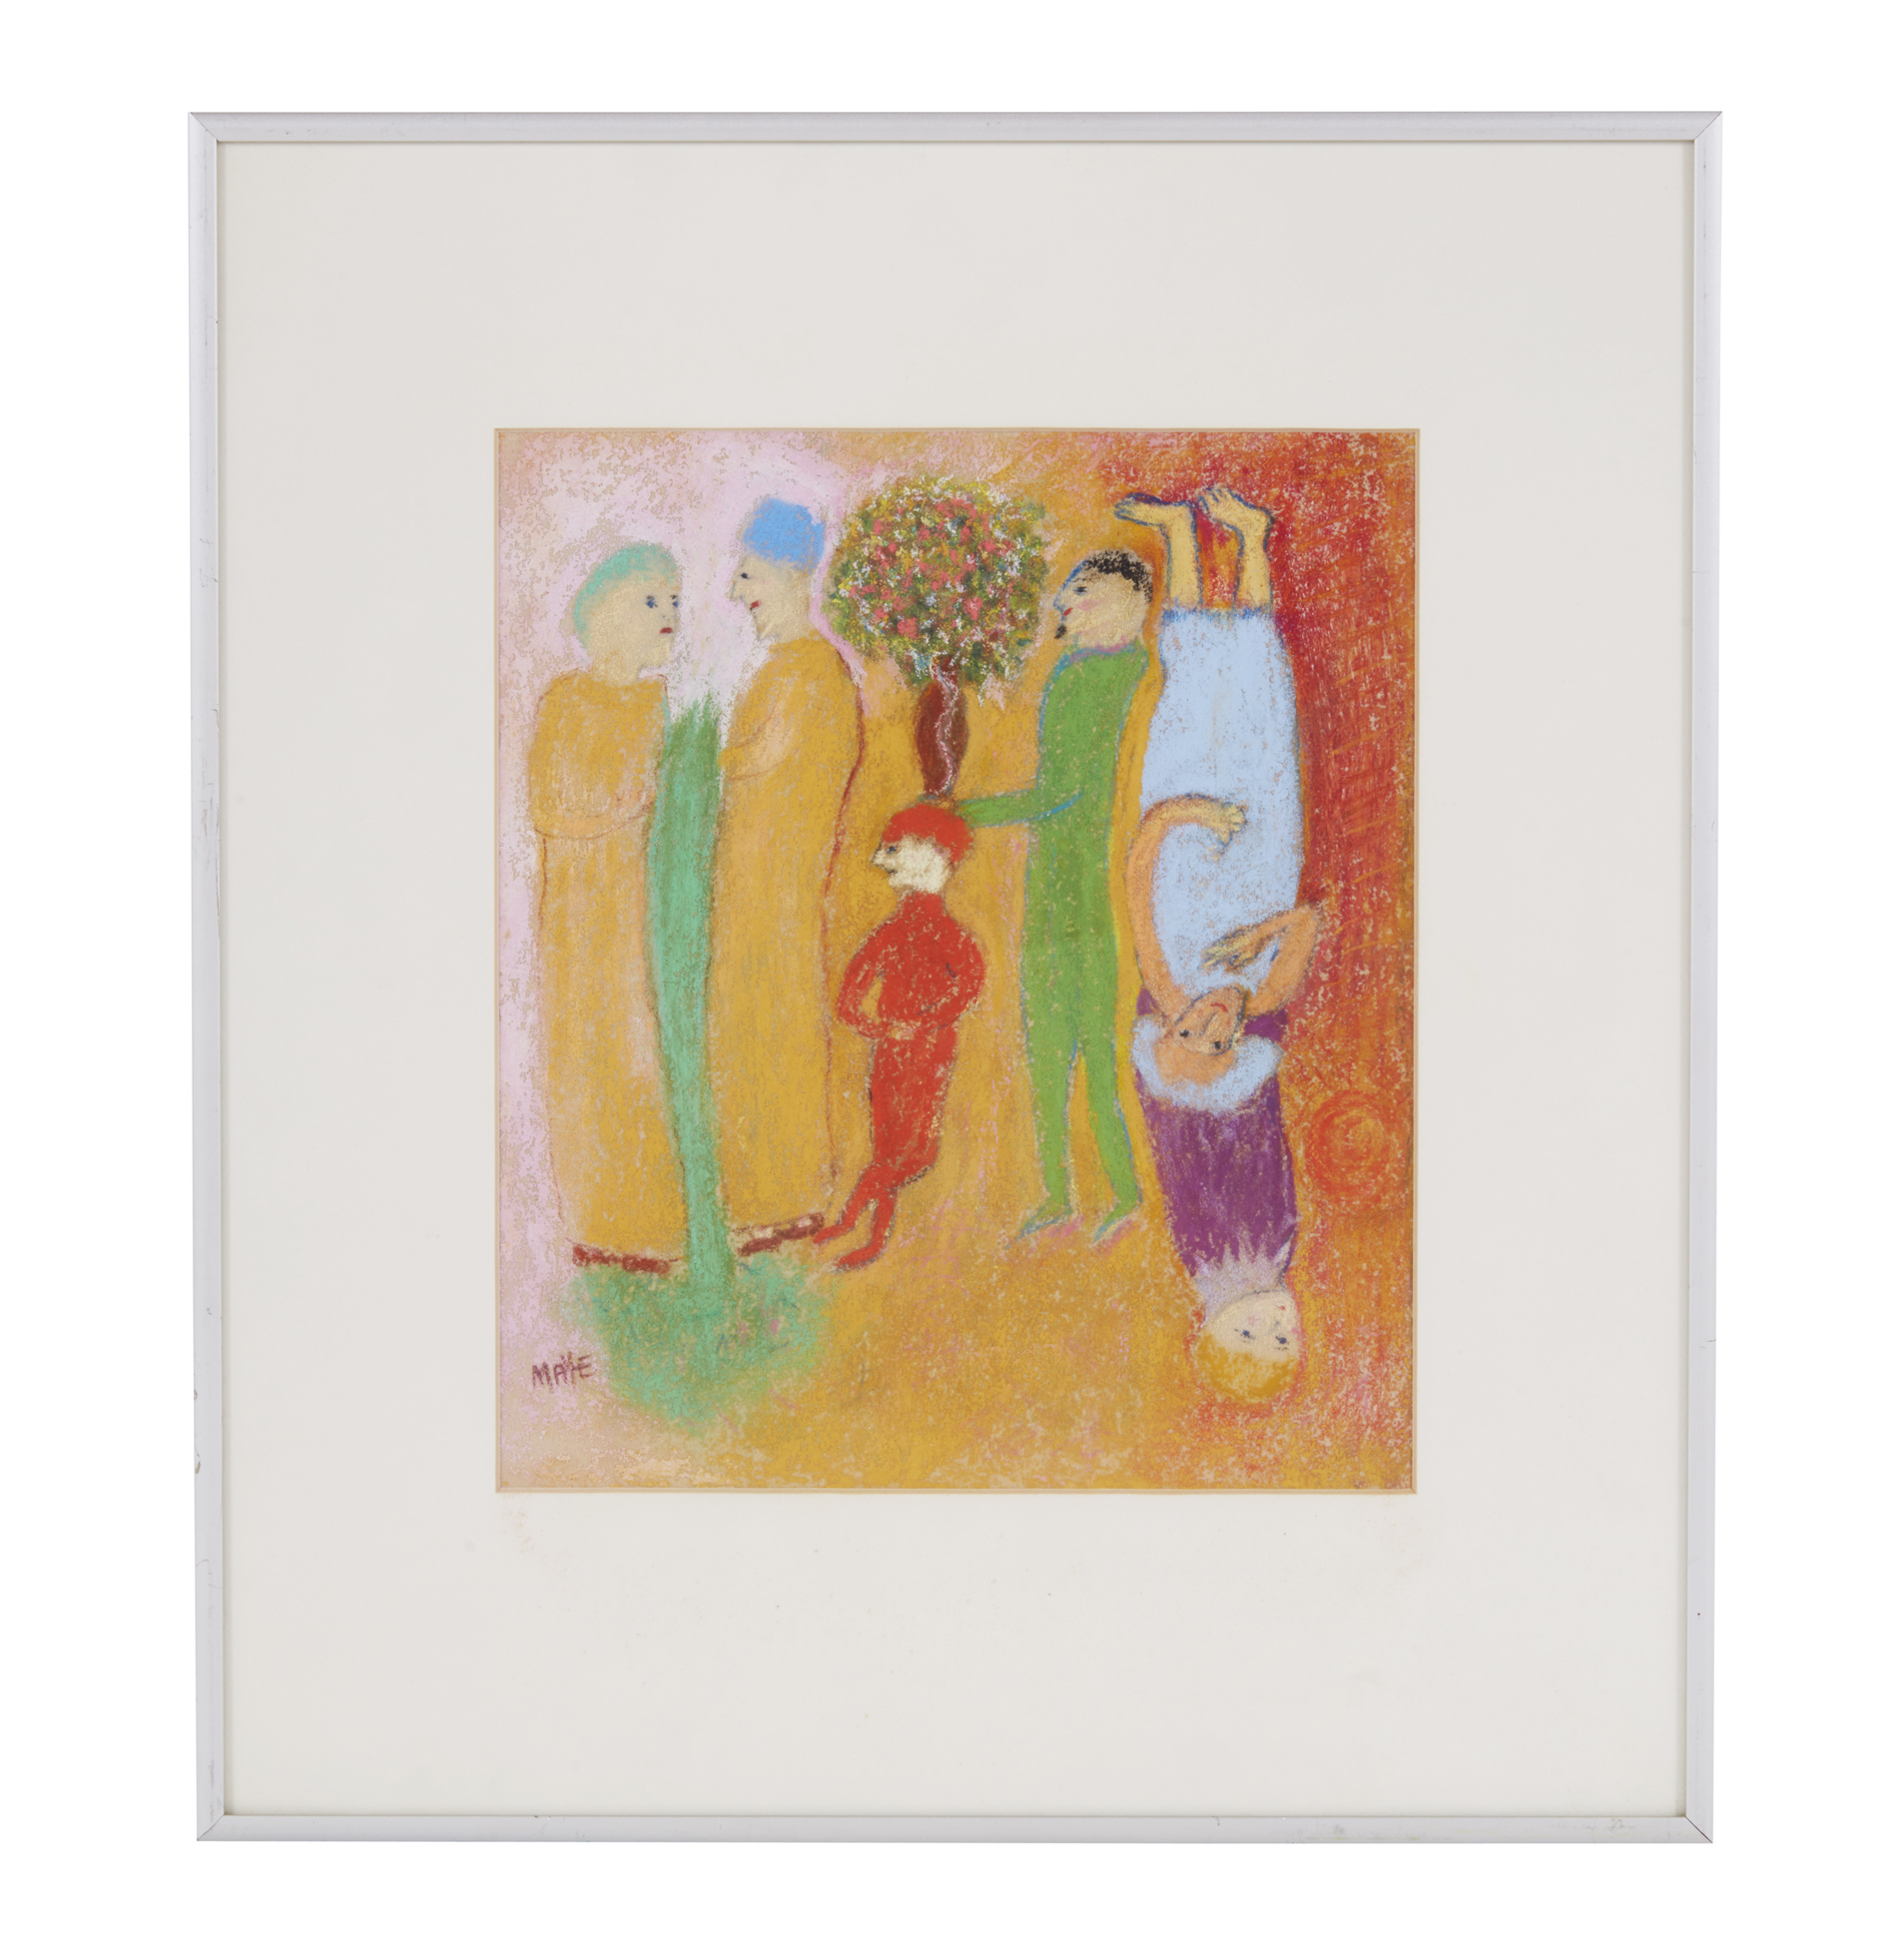 Pastel Painting Margaret Maye The Jester Witherell S